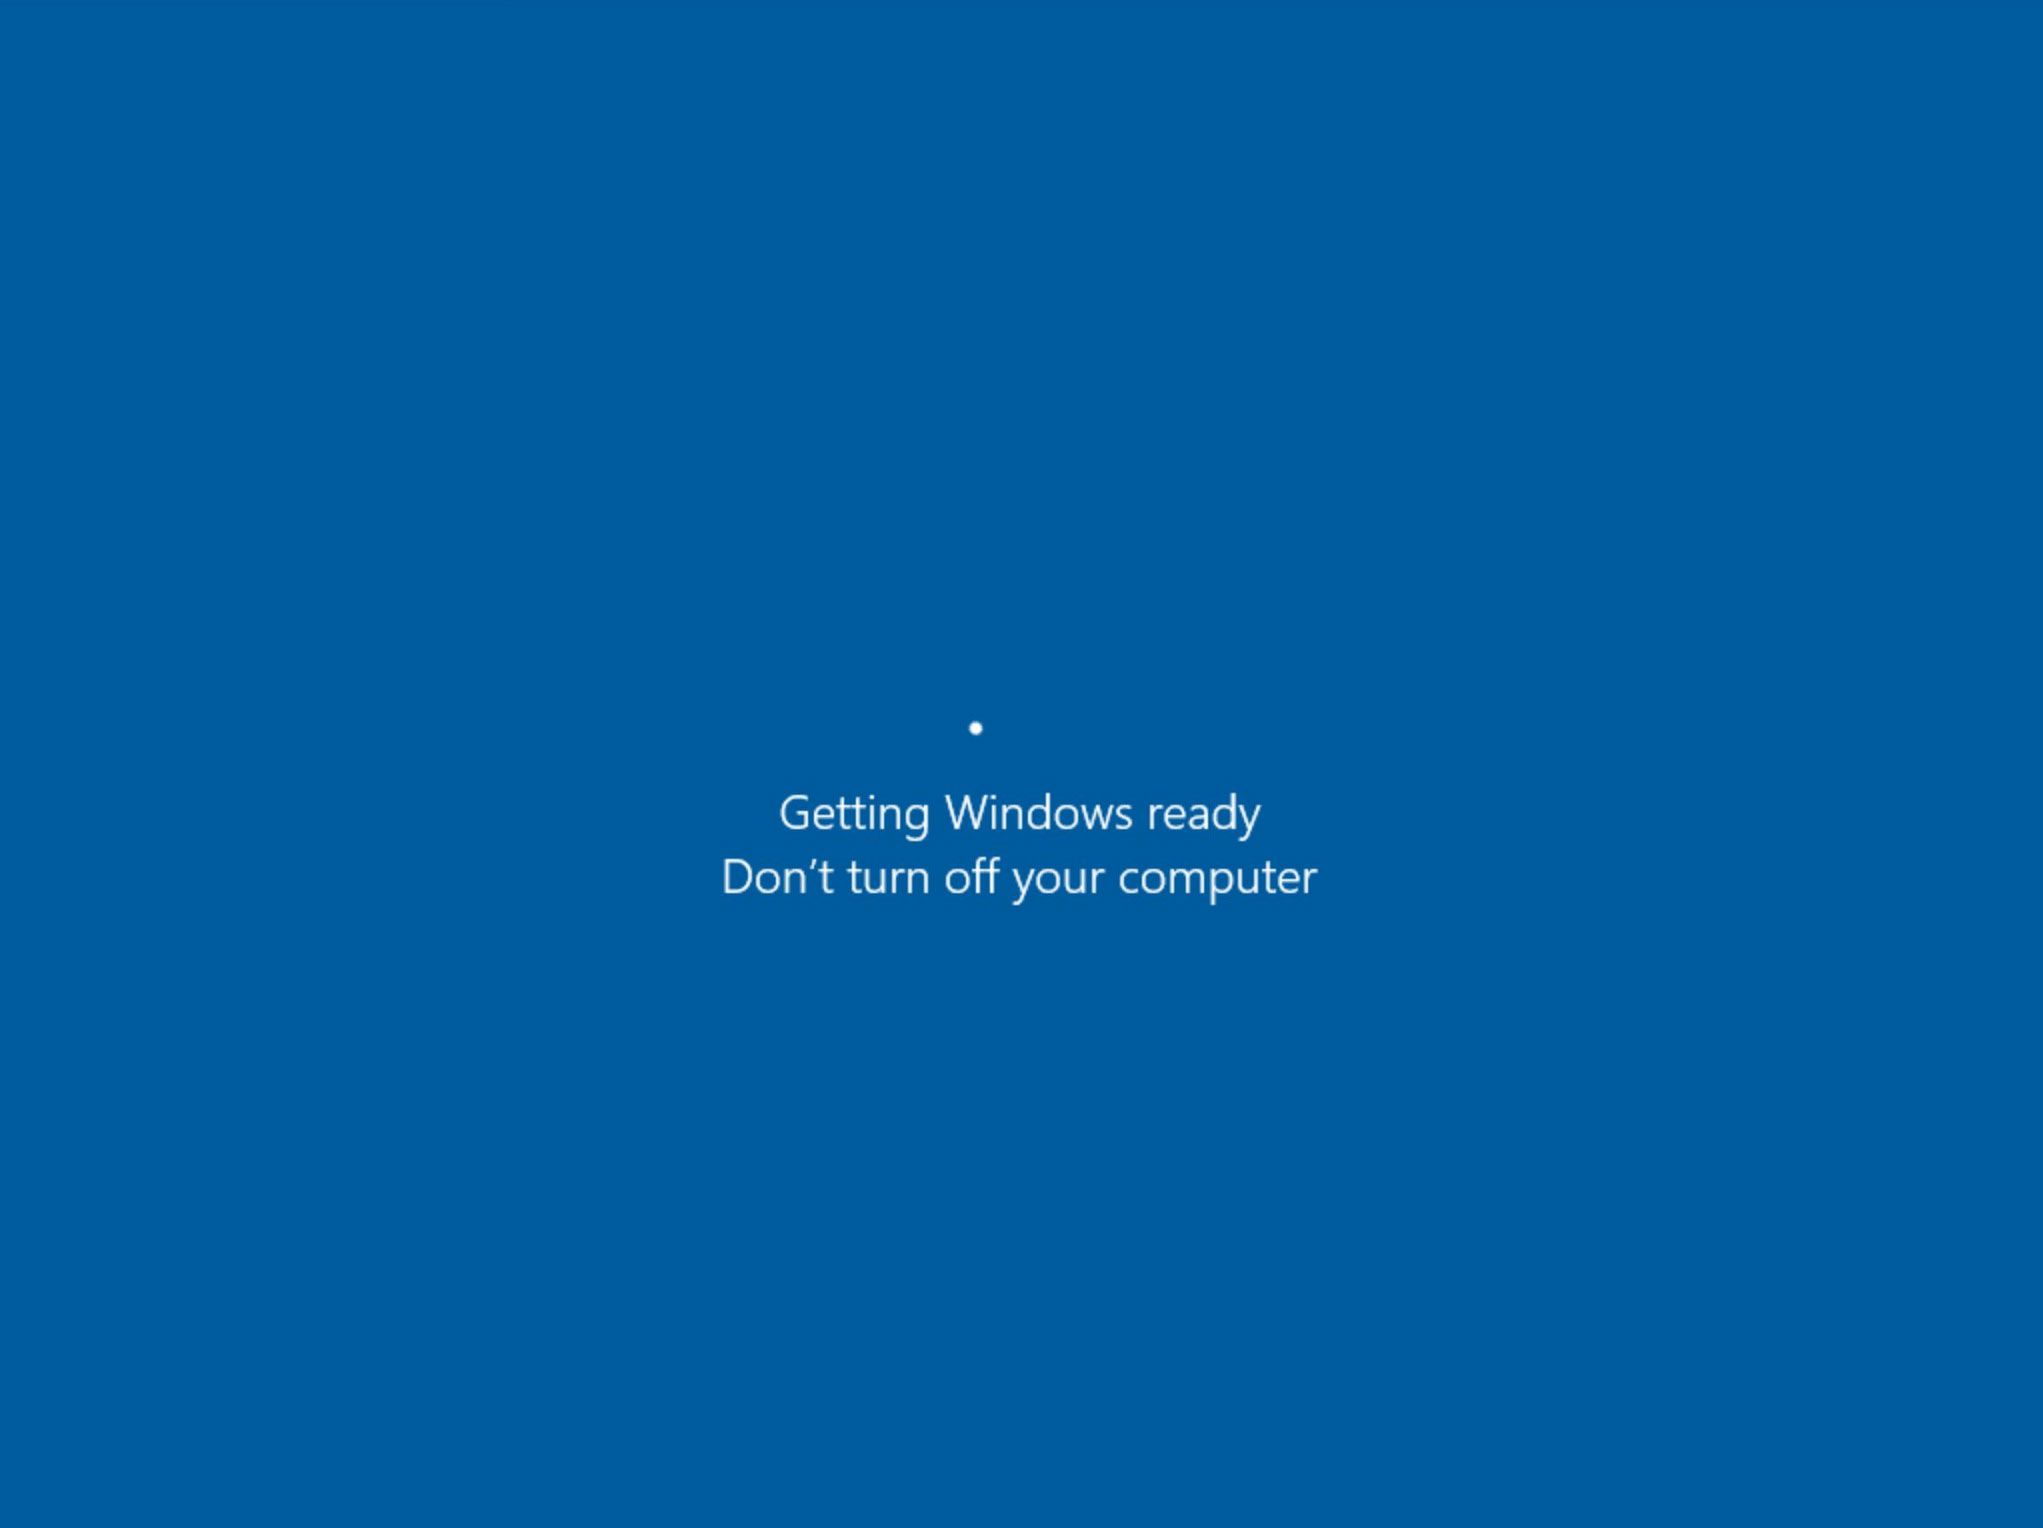 How To Make A Gif Your Wallpaper Iphone X How To Stop Windows 10 Updates In Progress